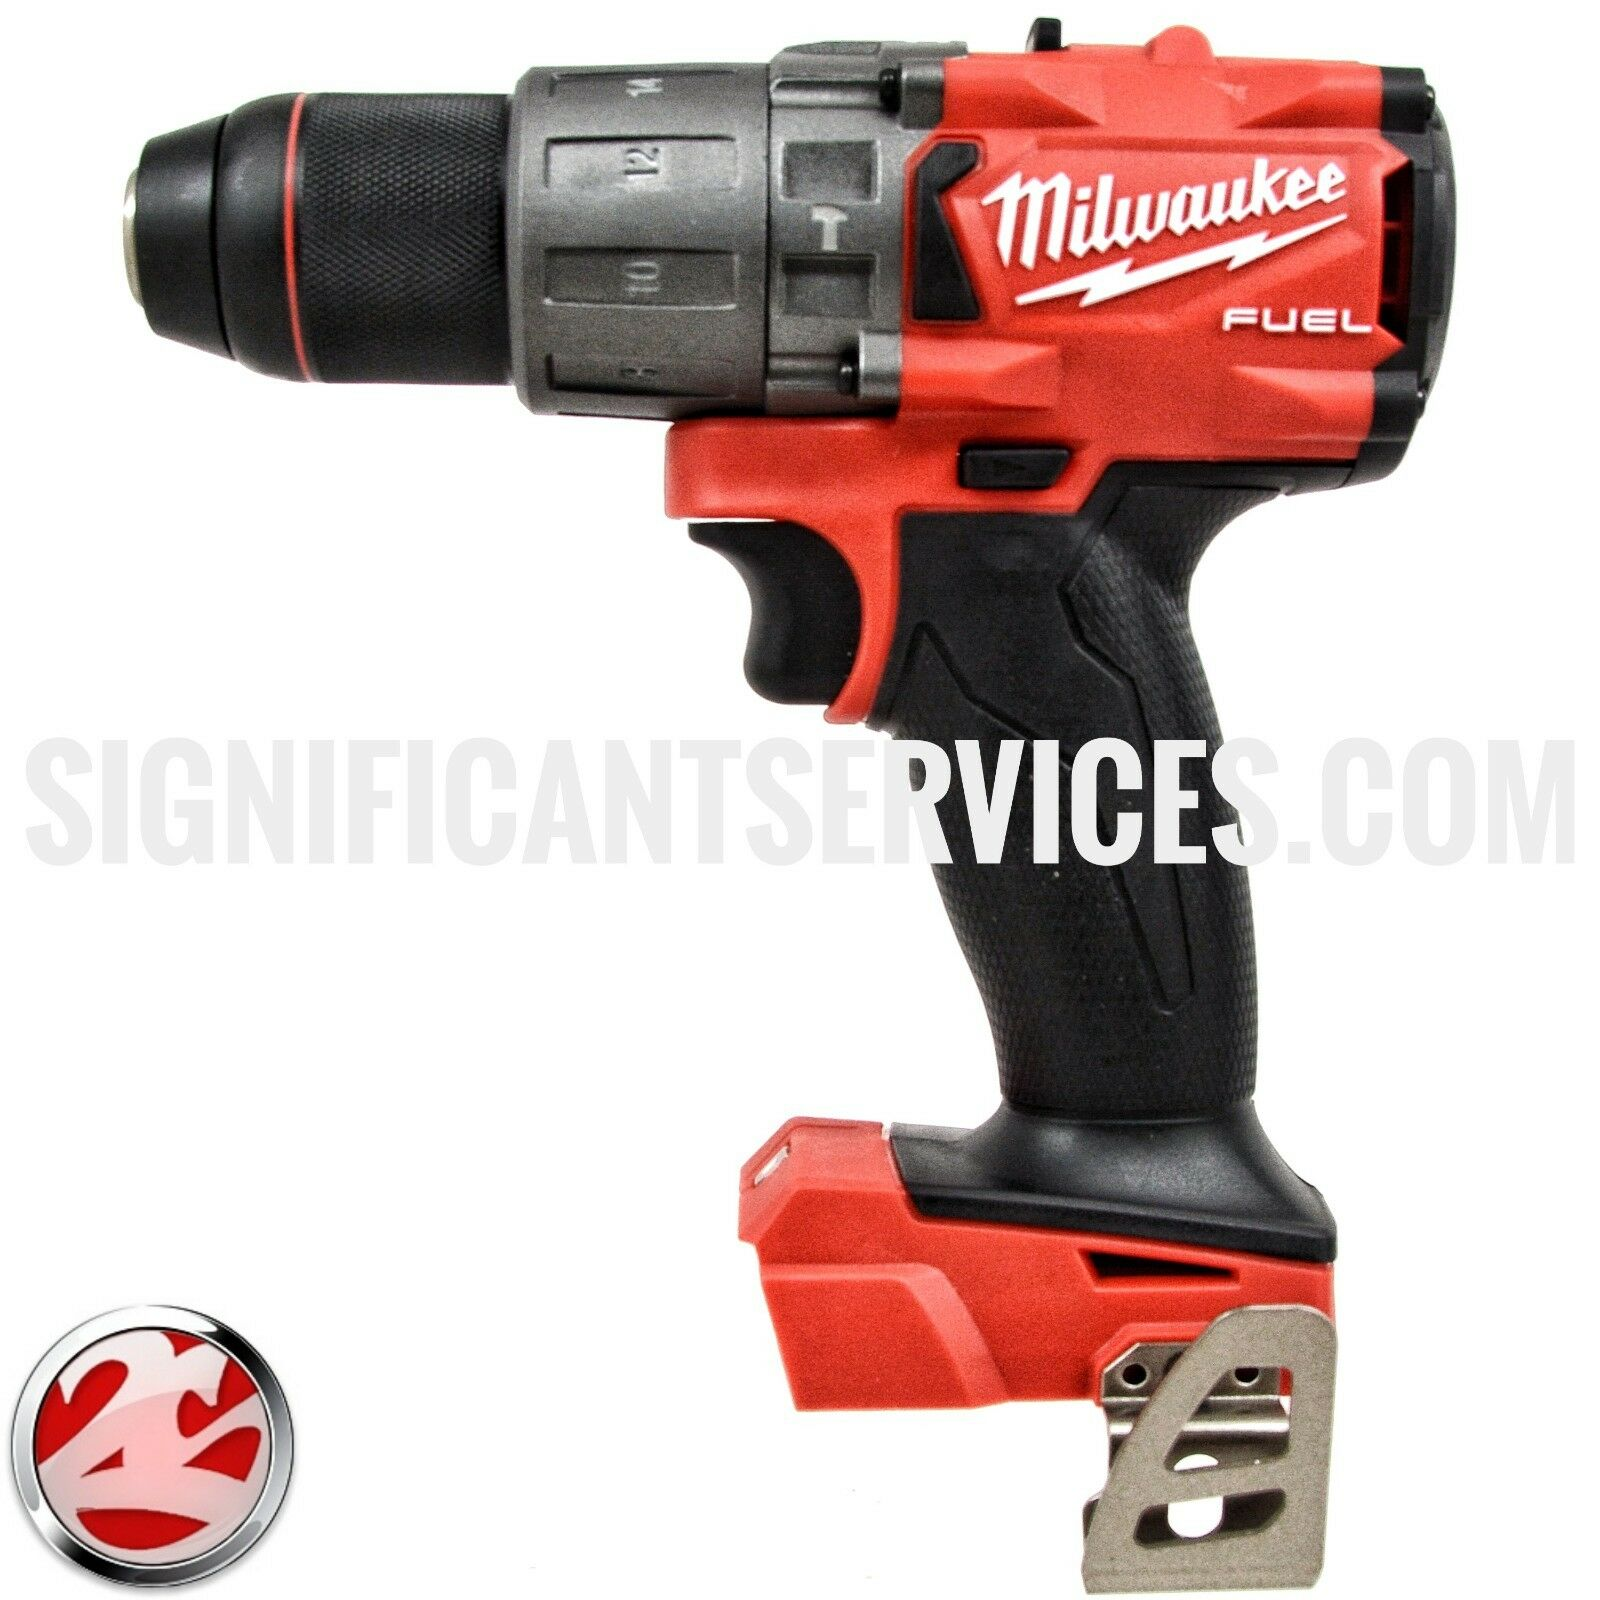 Milwaukee 2804-20 M18 FUEL Li-Ion 18V 1/2